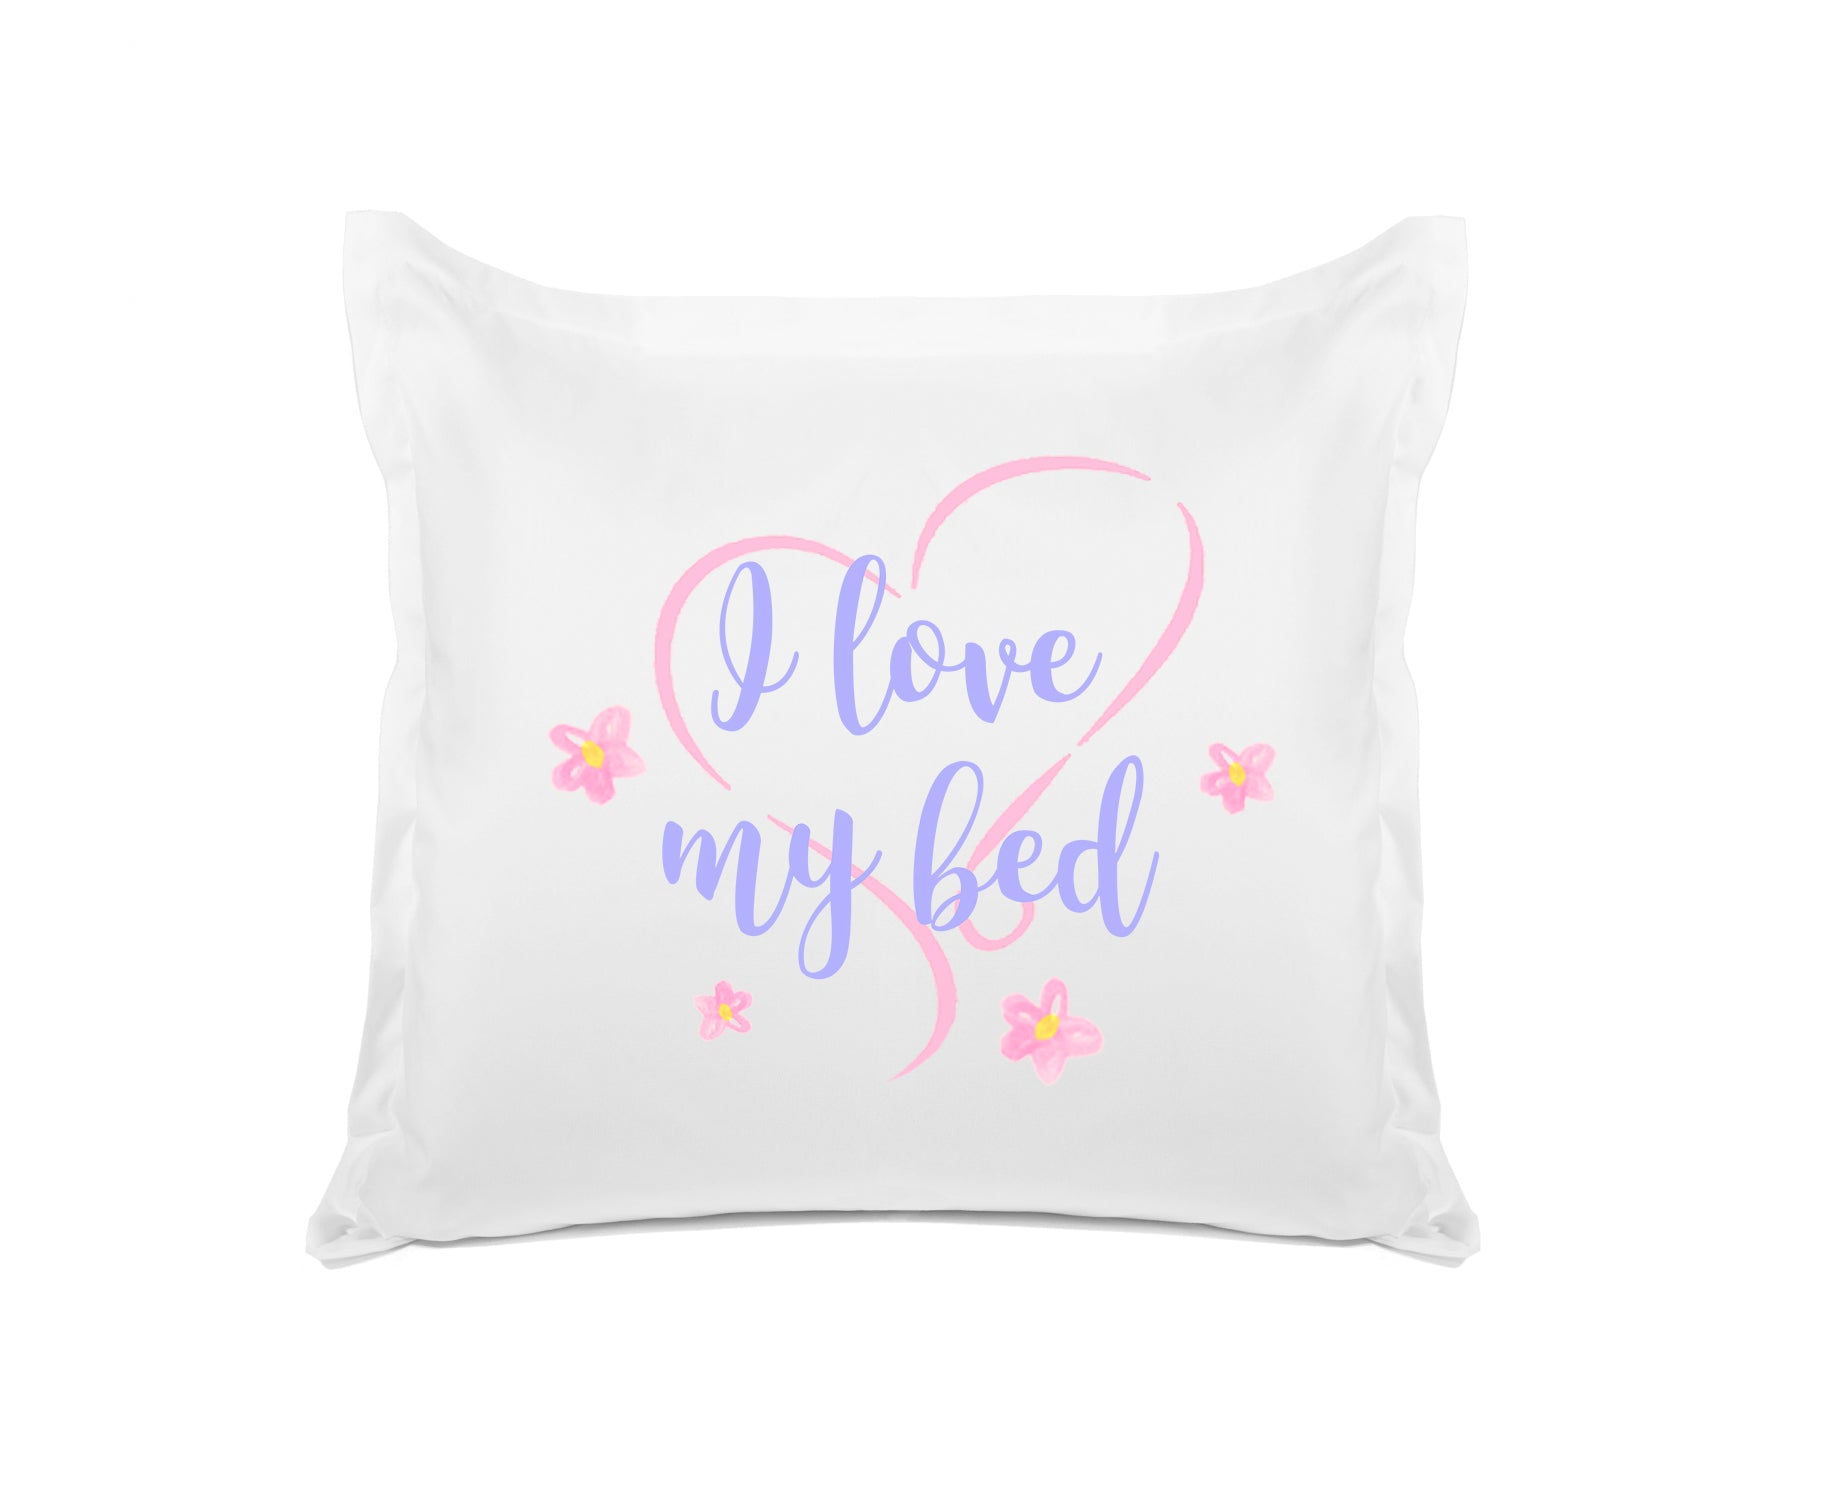 I Love My Bed quote pillow Di Lewis bedroom decor